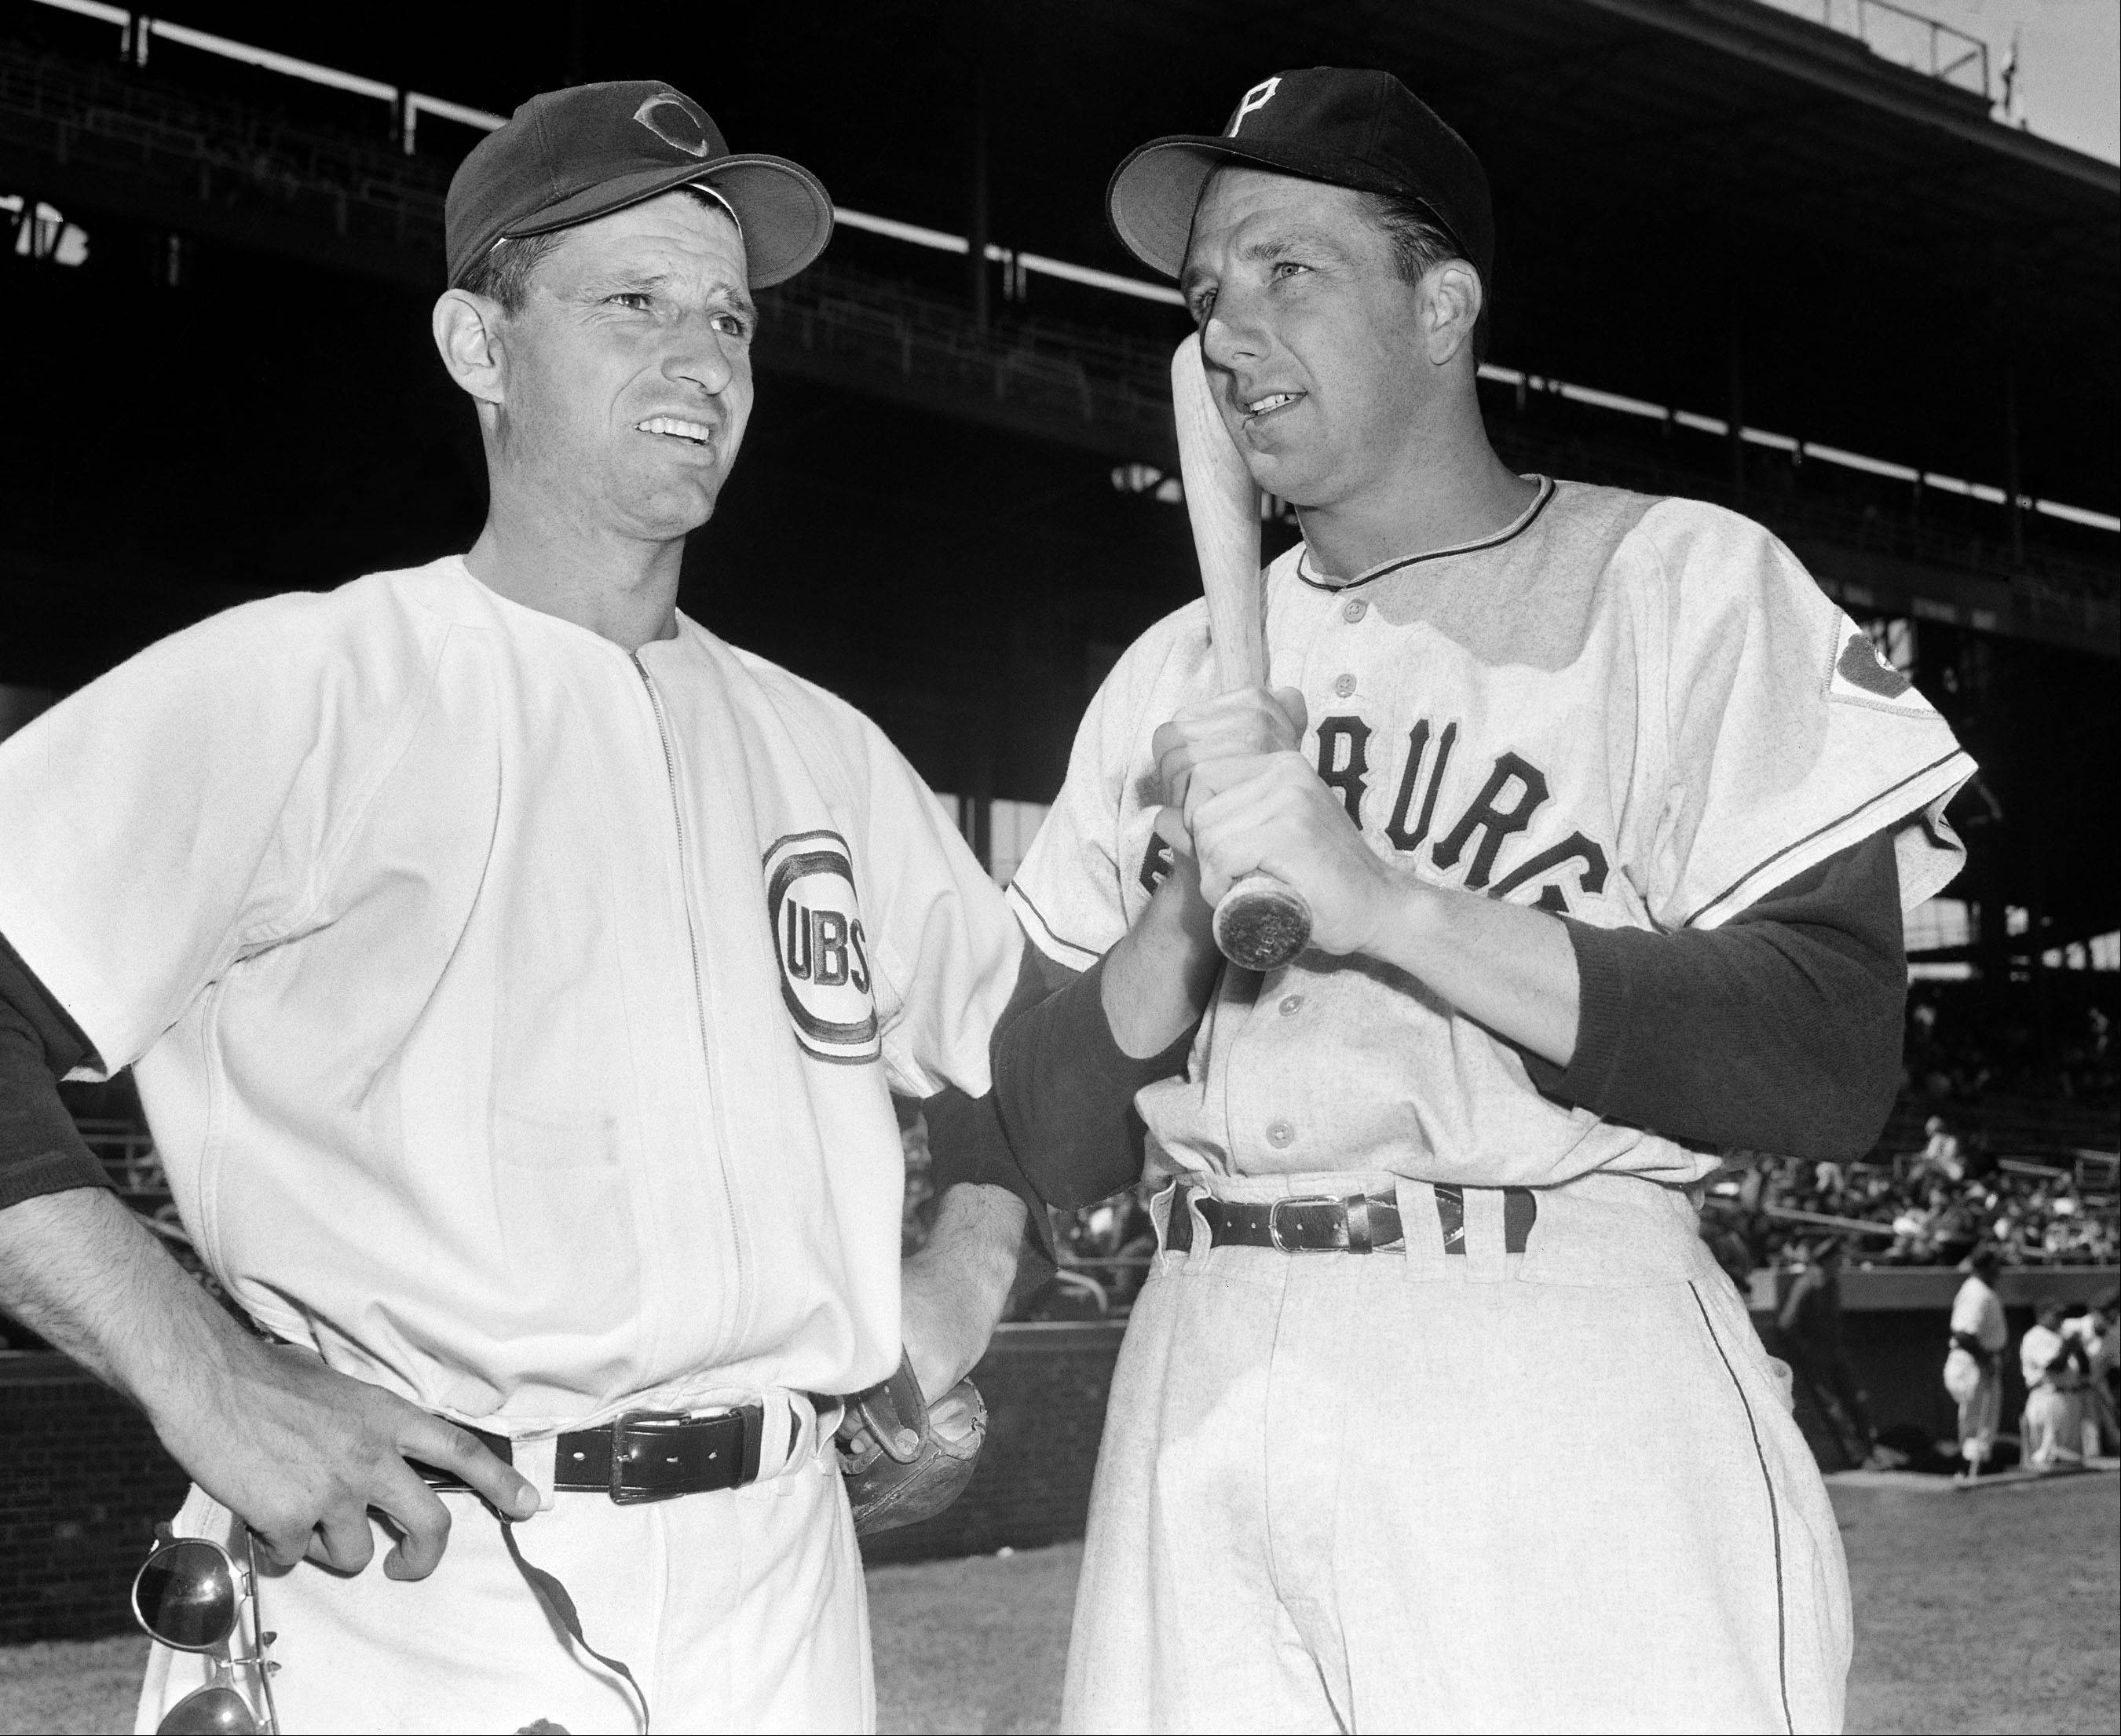 Andy Pafko (left) got together with slugger Ralph Kiner of the Pittsburgh Pirates at Wrigley Field before a game on April 23, 1951.